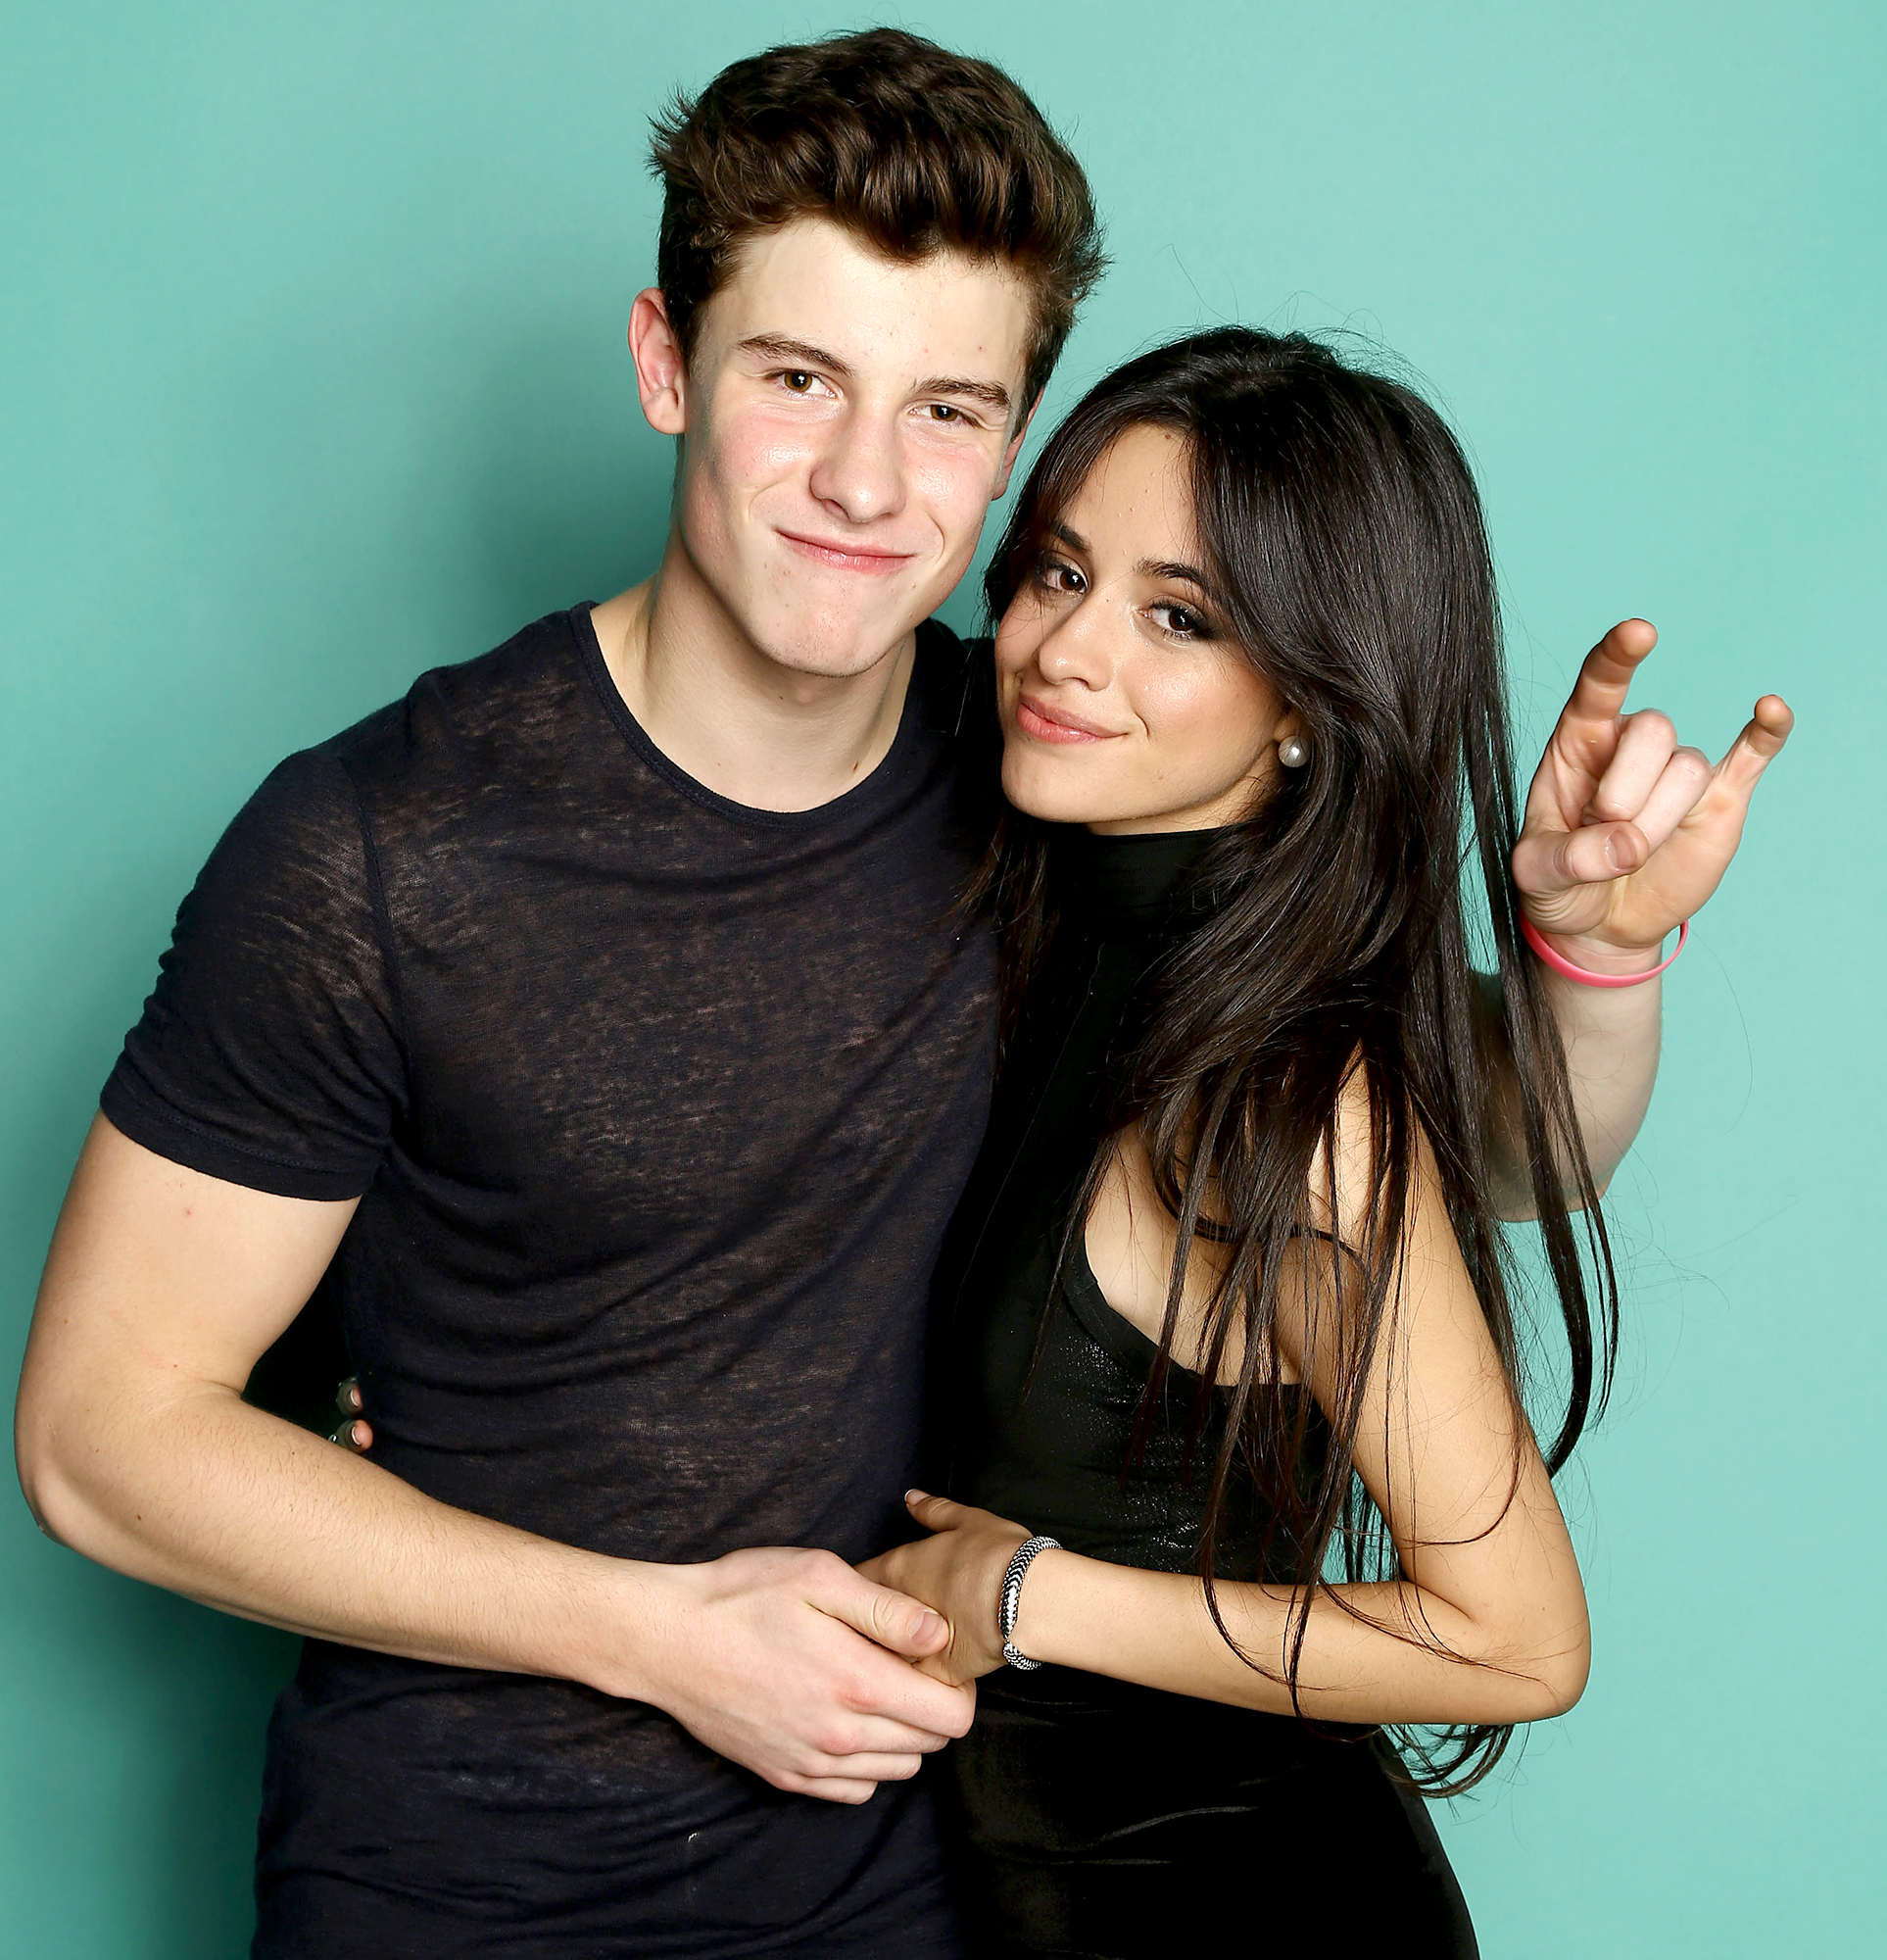 Shawn-Mendes-Never-Been-Happier-Camila-Cabello-Romance